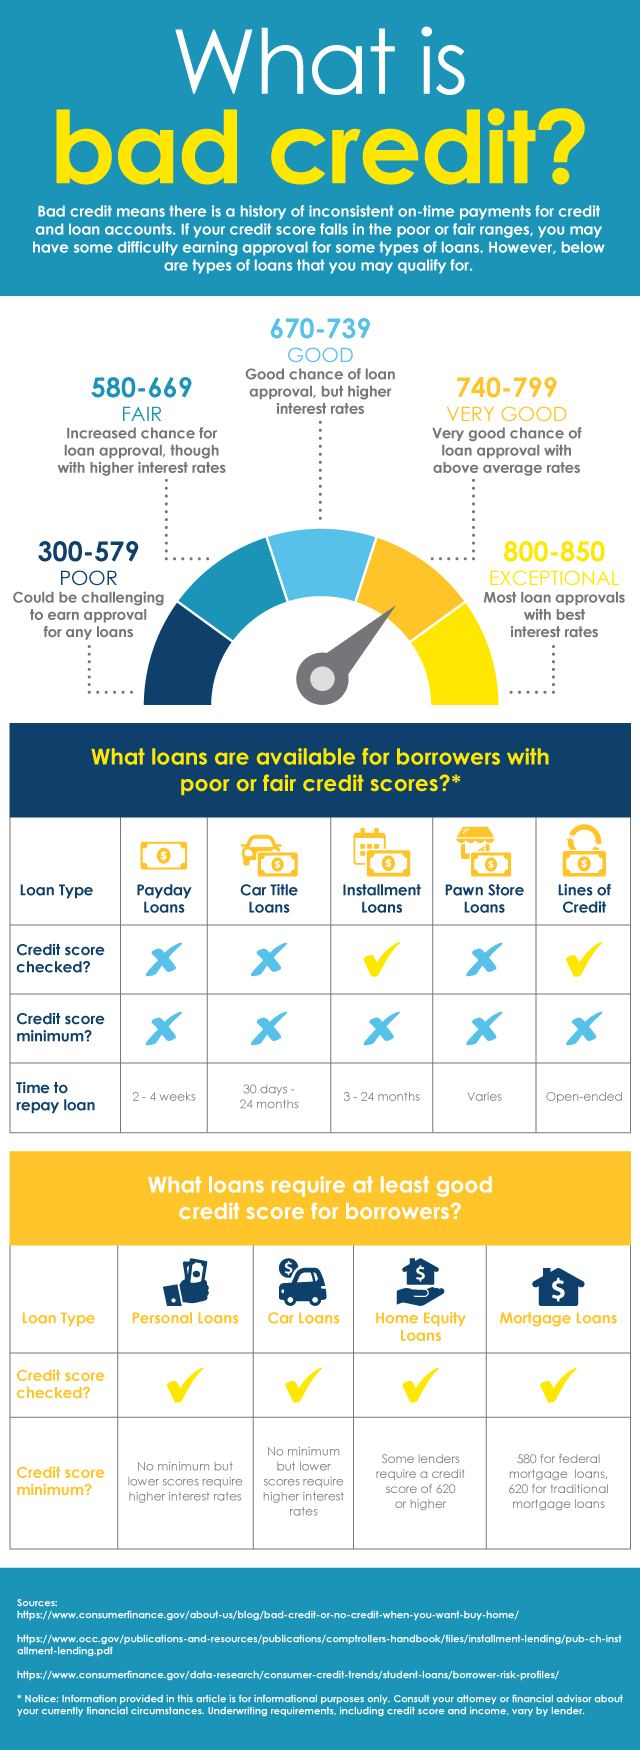 Loan options available for borrowers with bad credit